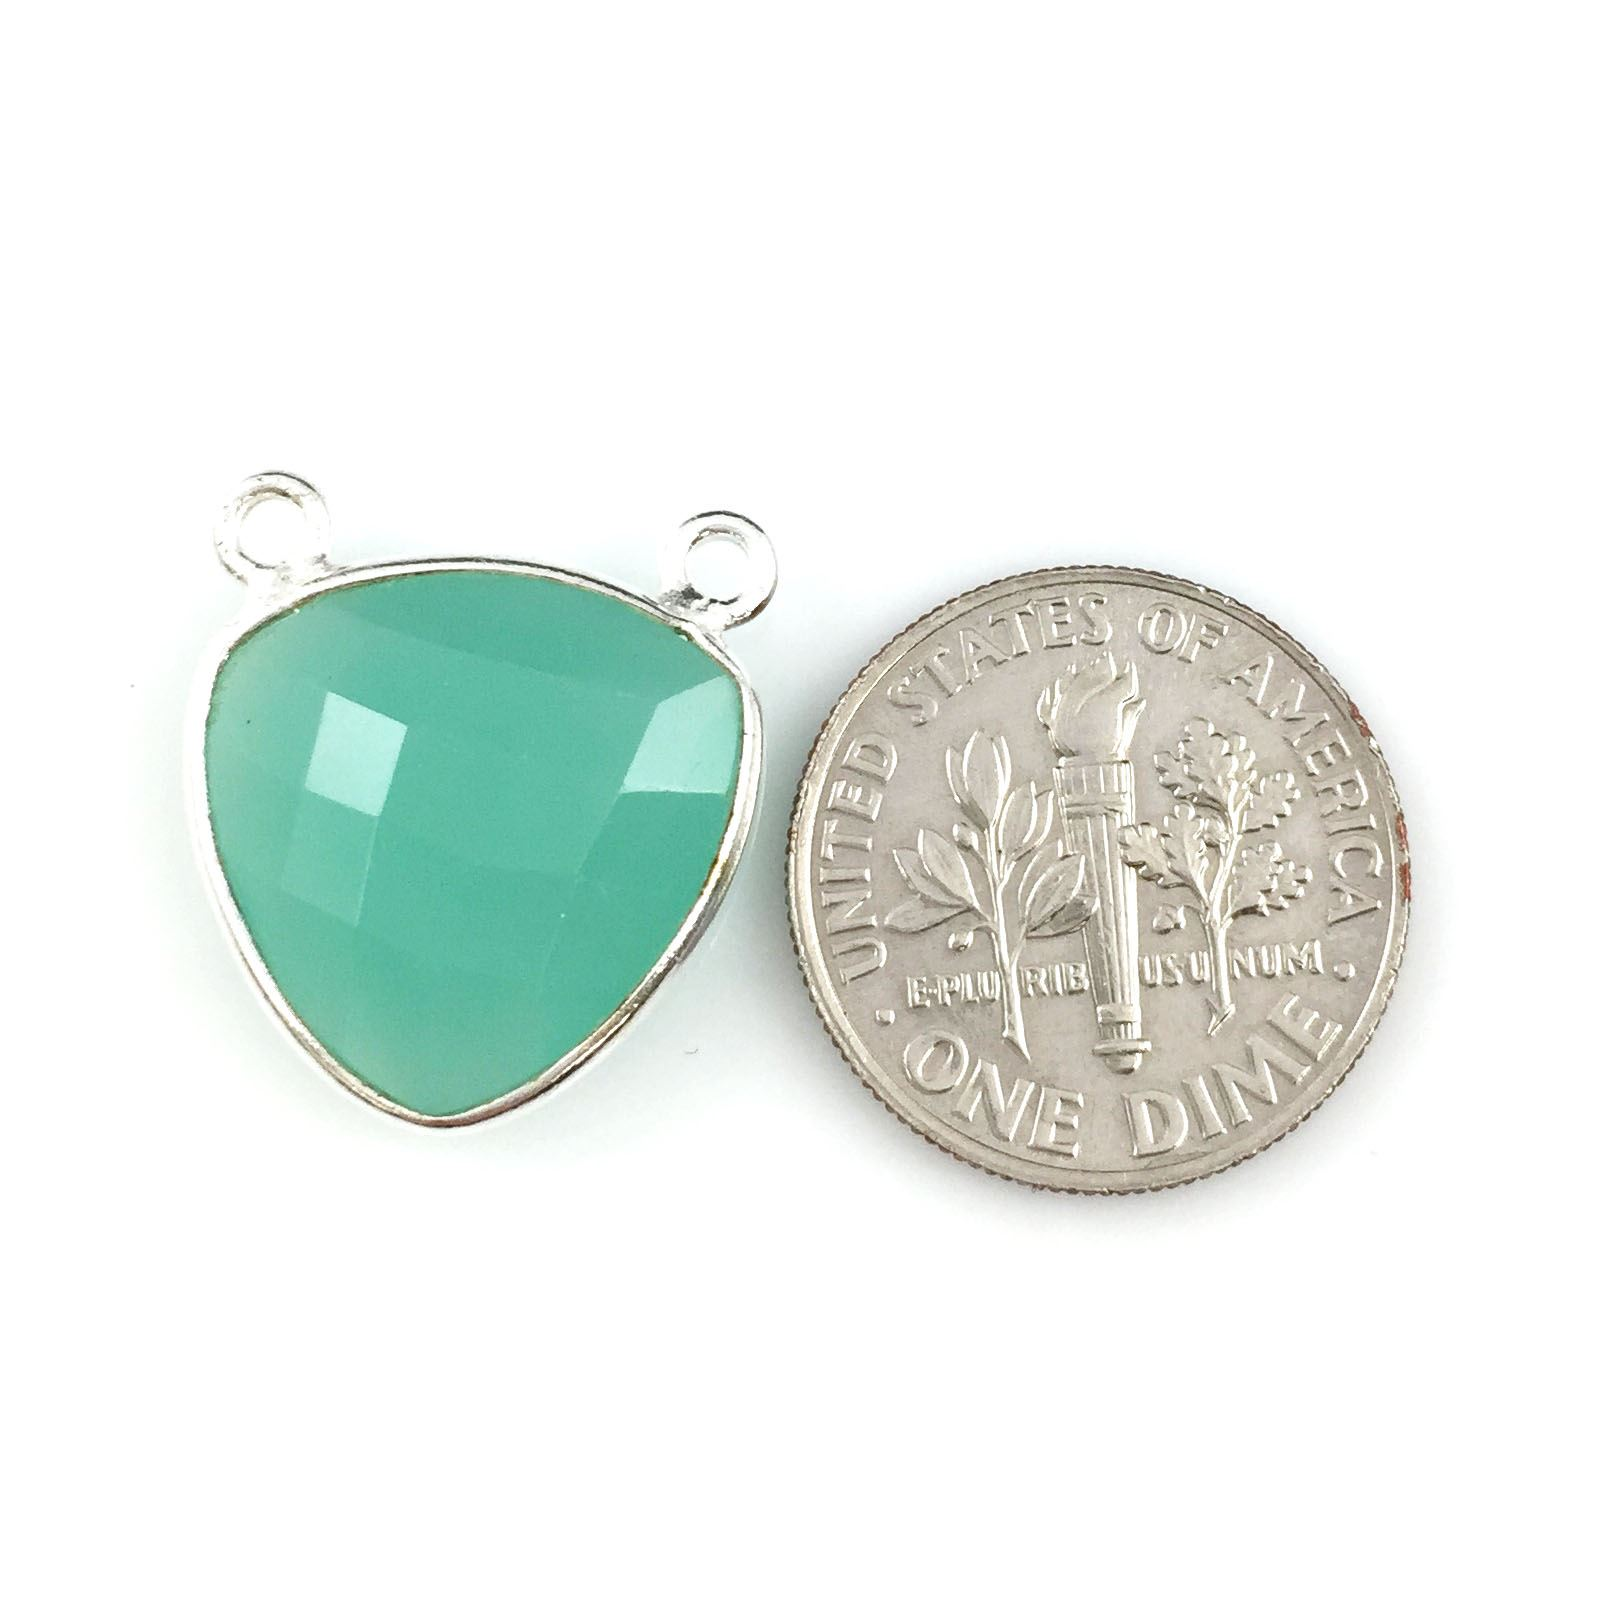 Bezel Gemstone Connector Pendant - Peru Chalcedony- Sterling Silver - Small Trillion Shaped Faceted - 15mm - 1 piece